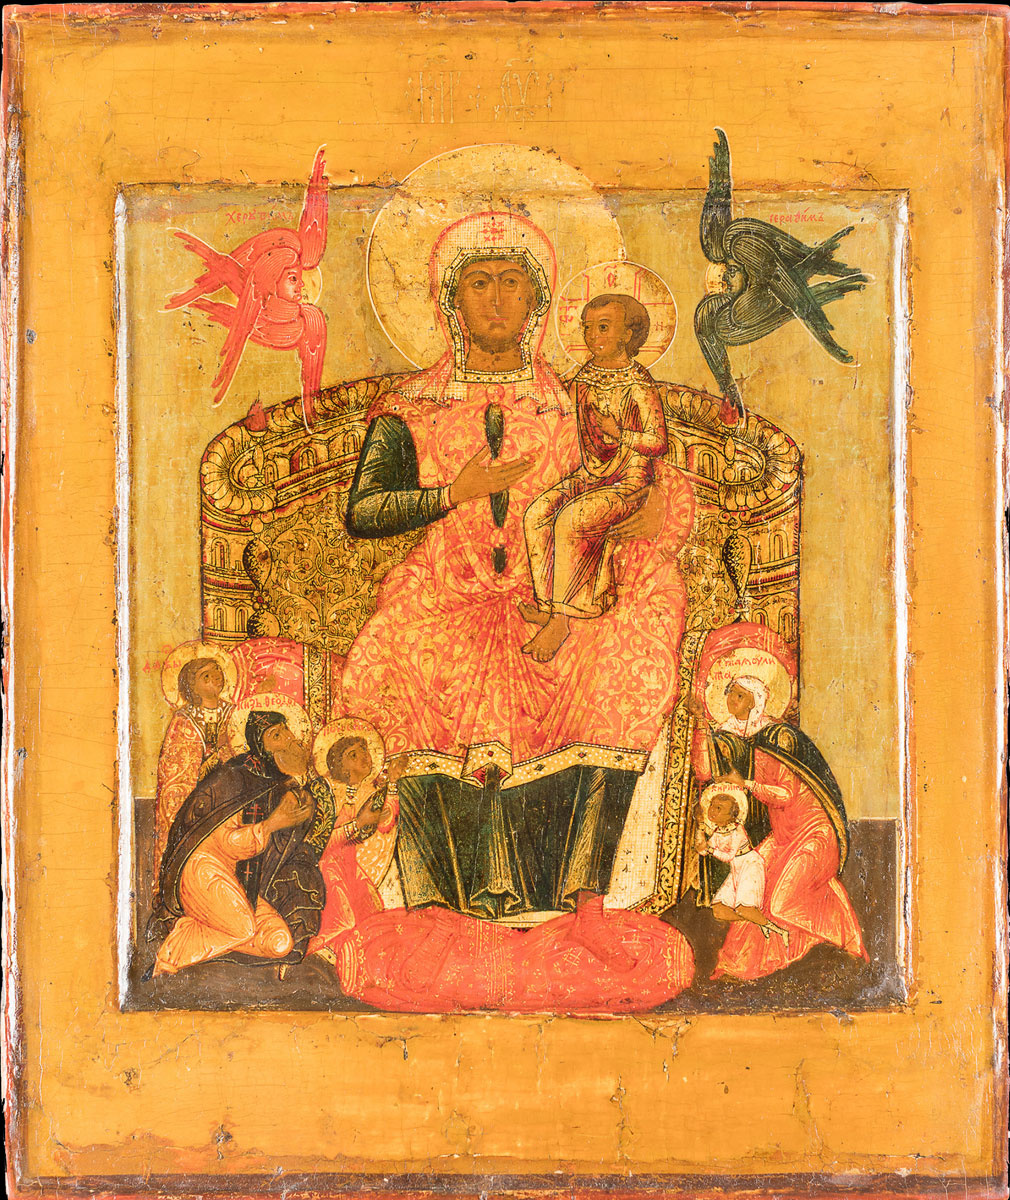 Icon Painting. The Virgin and Child on the throne, with selected saints